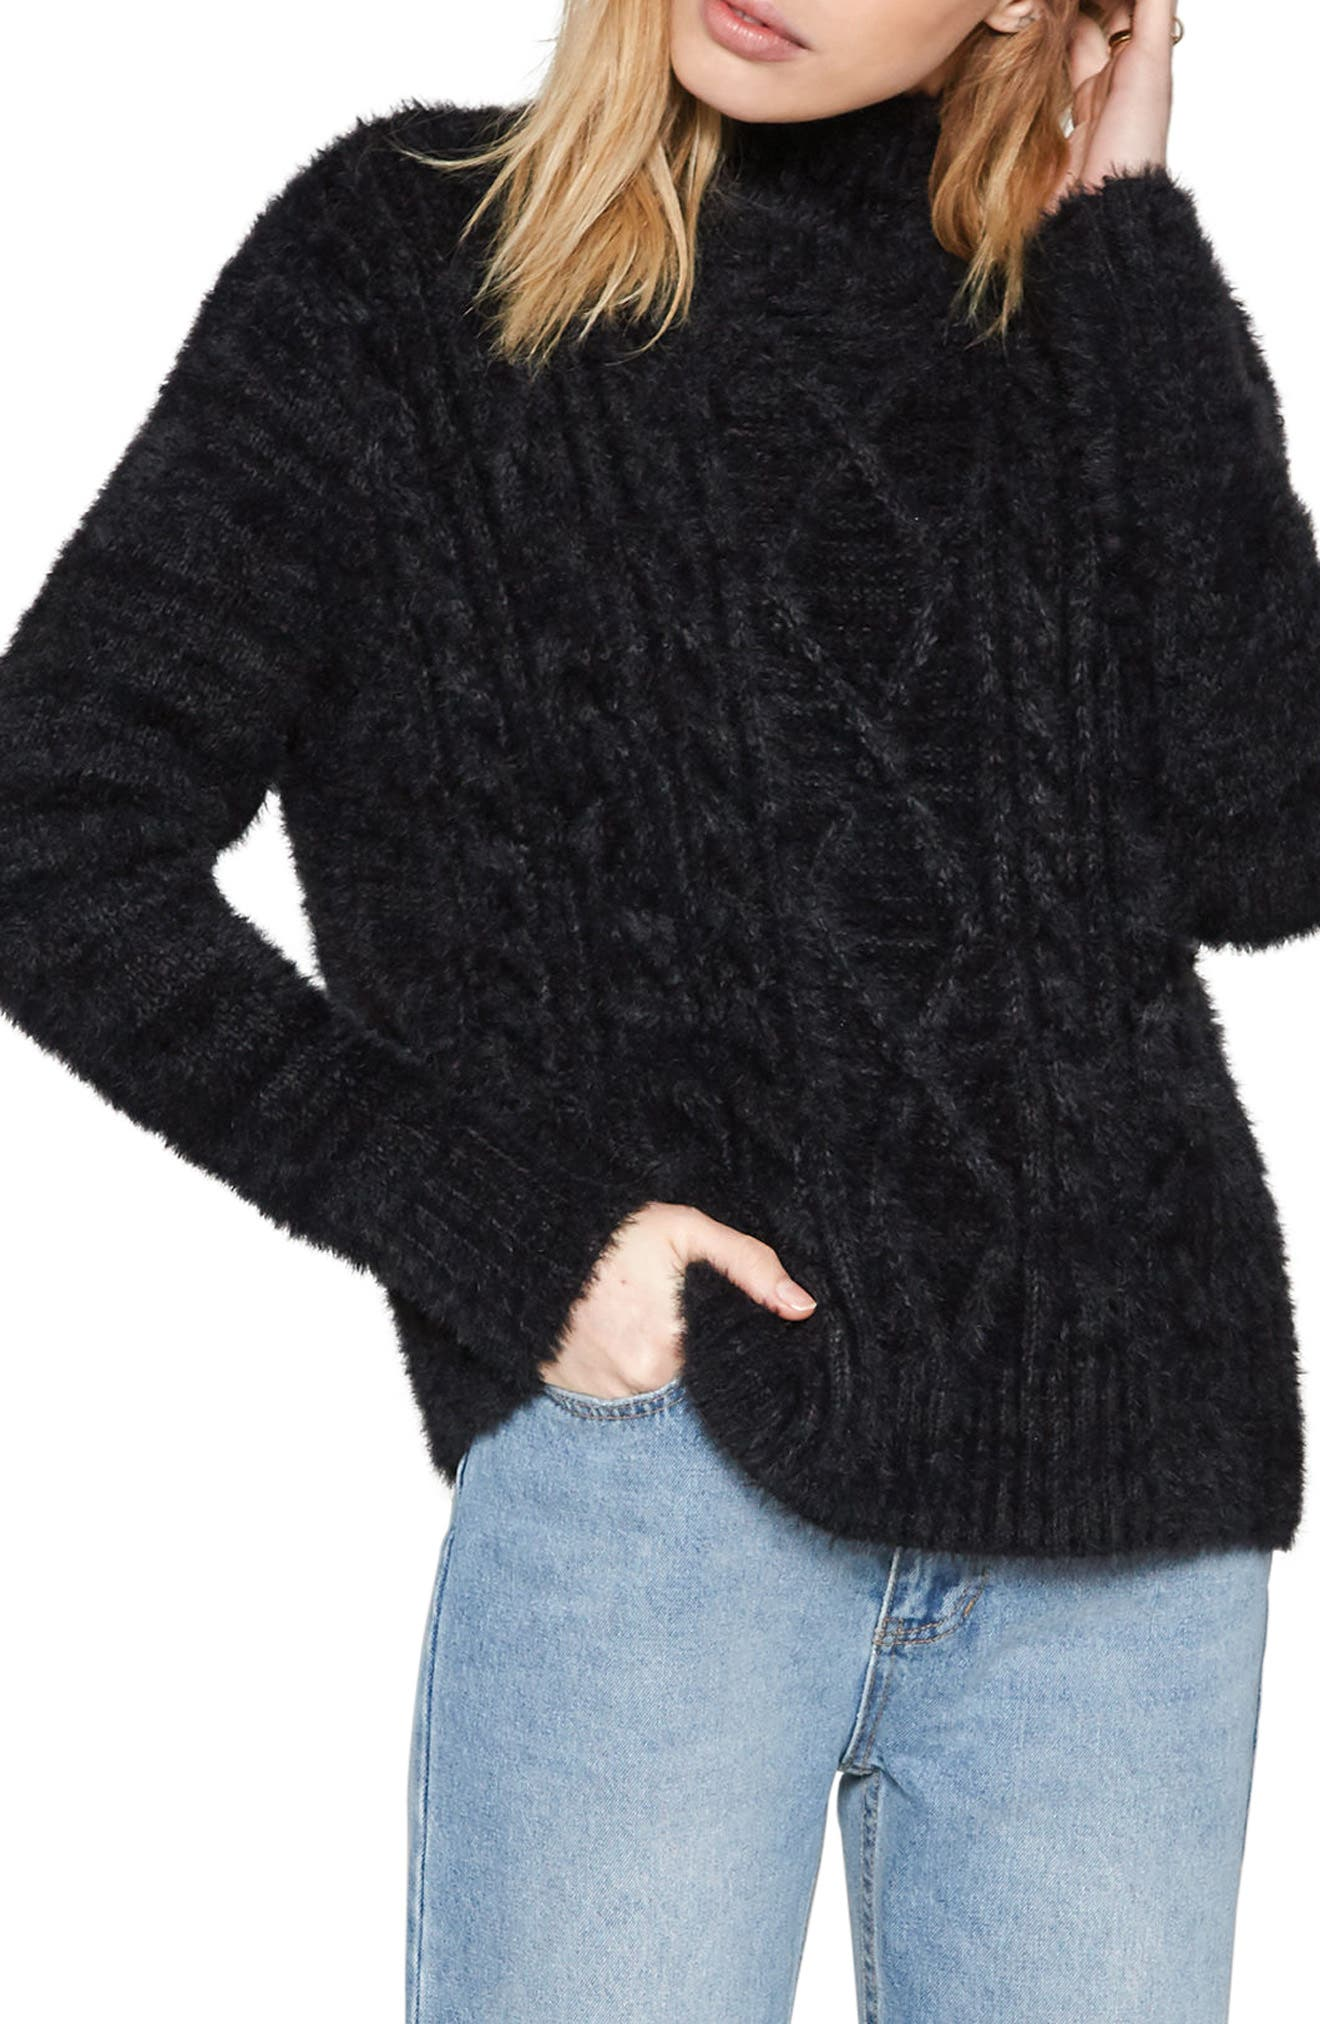 Cool Winds Cable Knit Sweater,                         Main,                         color,